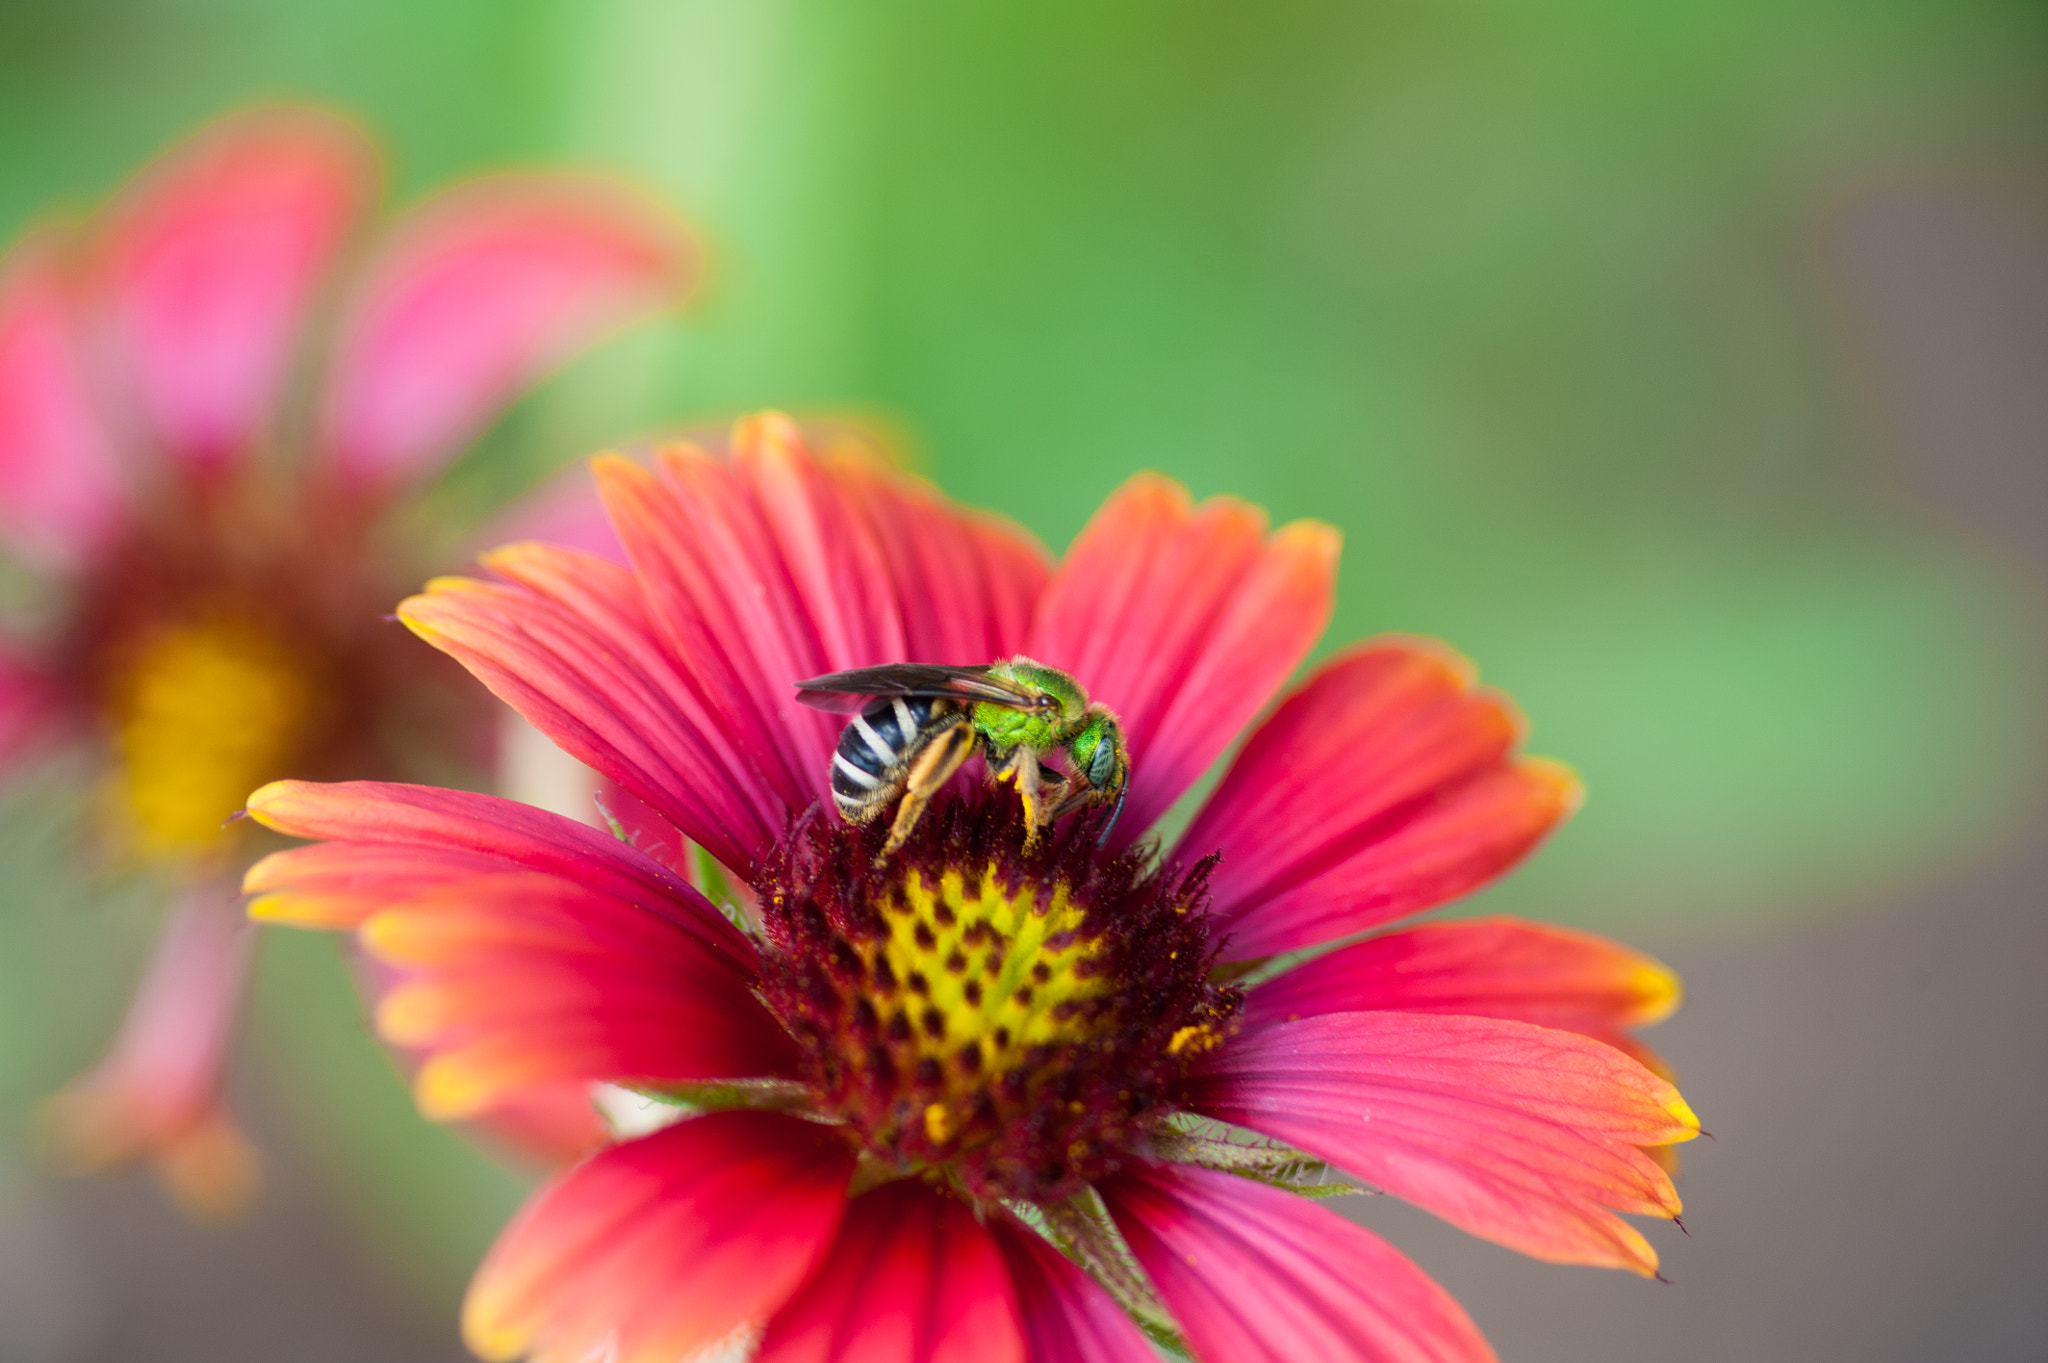 Photograph Flower & Wasp by John Kennington on 500px